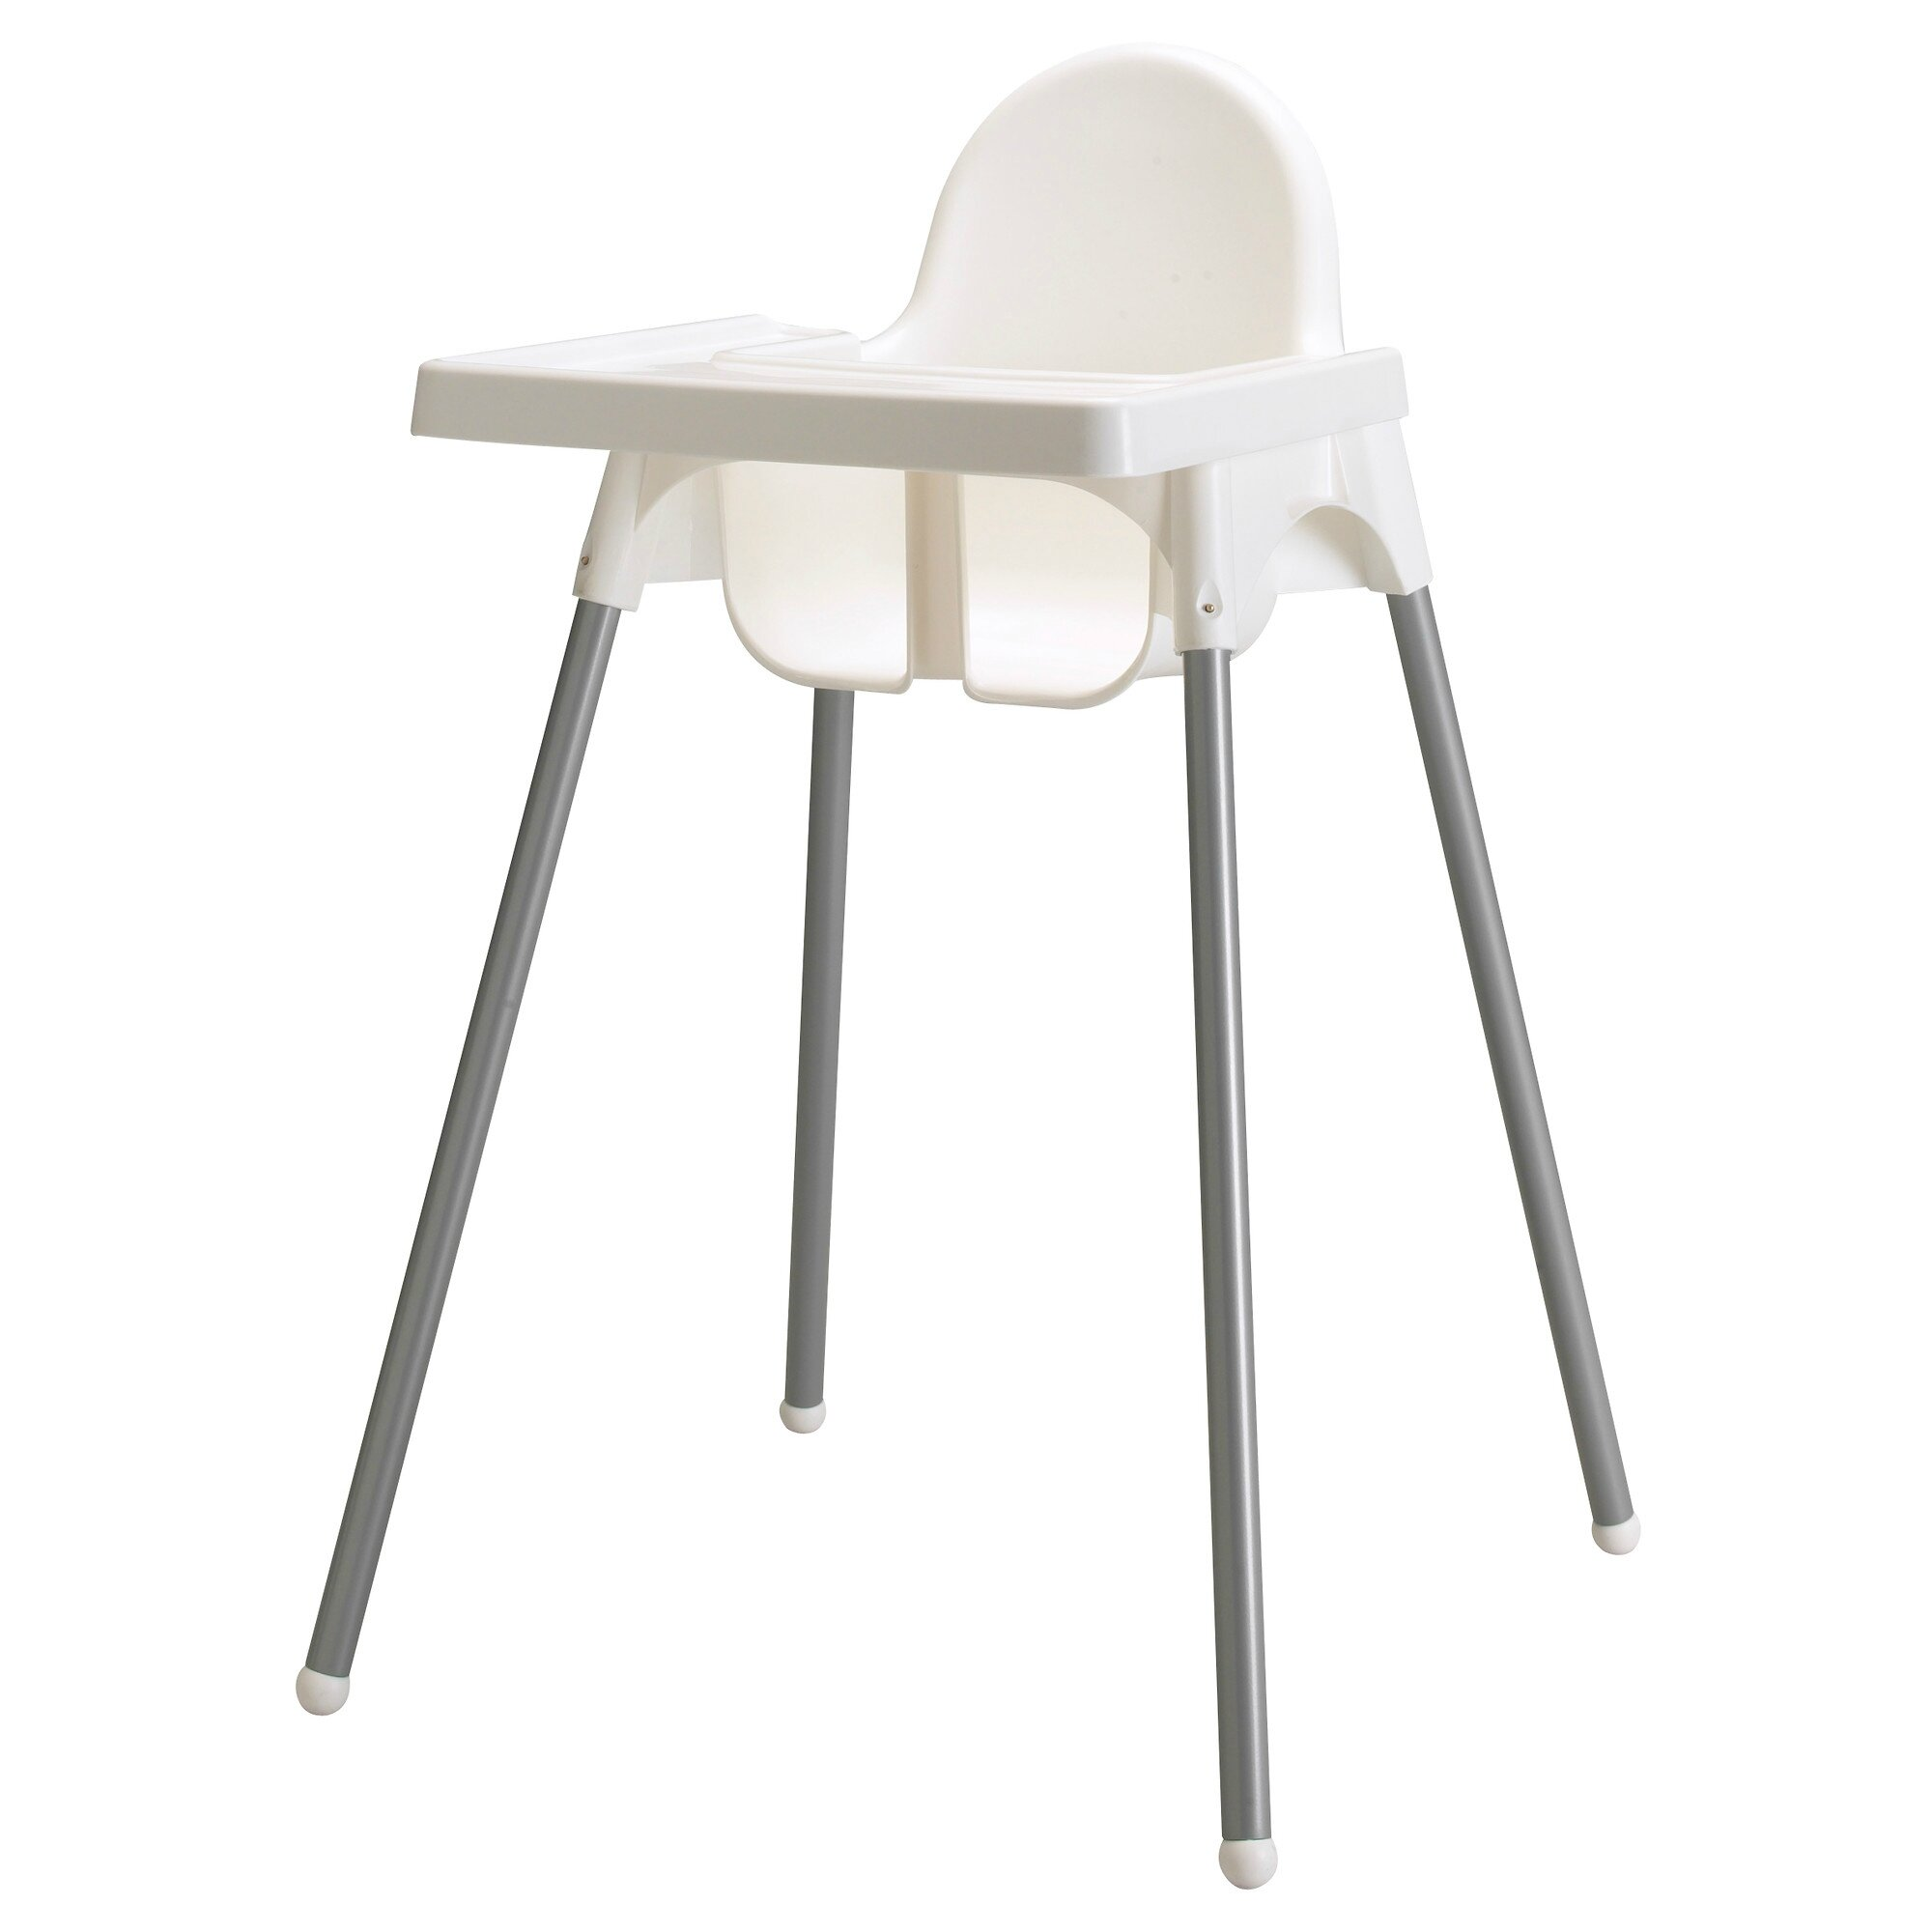 Chaise haute cuisine ikea chaise haute tabouret de bar for Tabouret couleur ikea